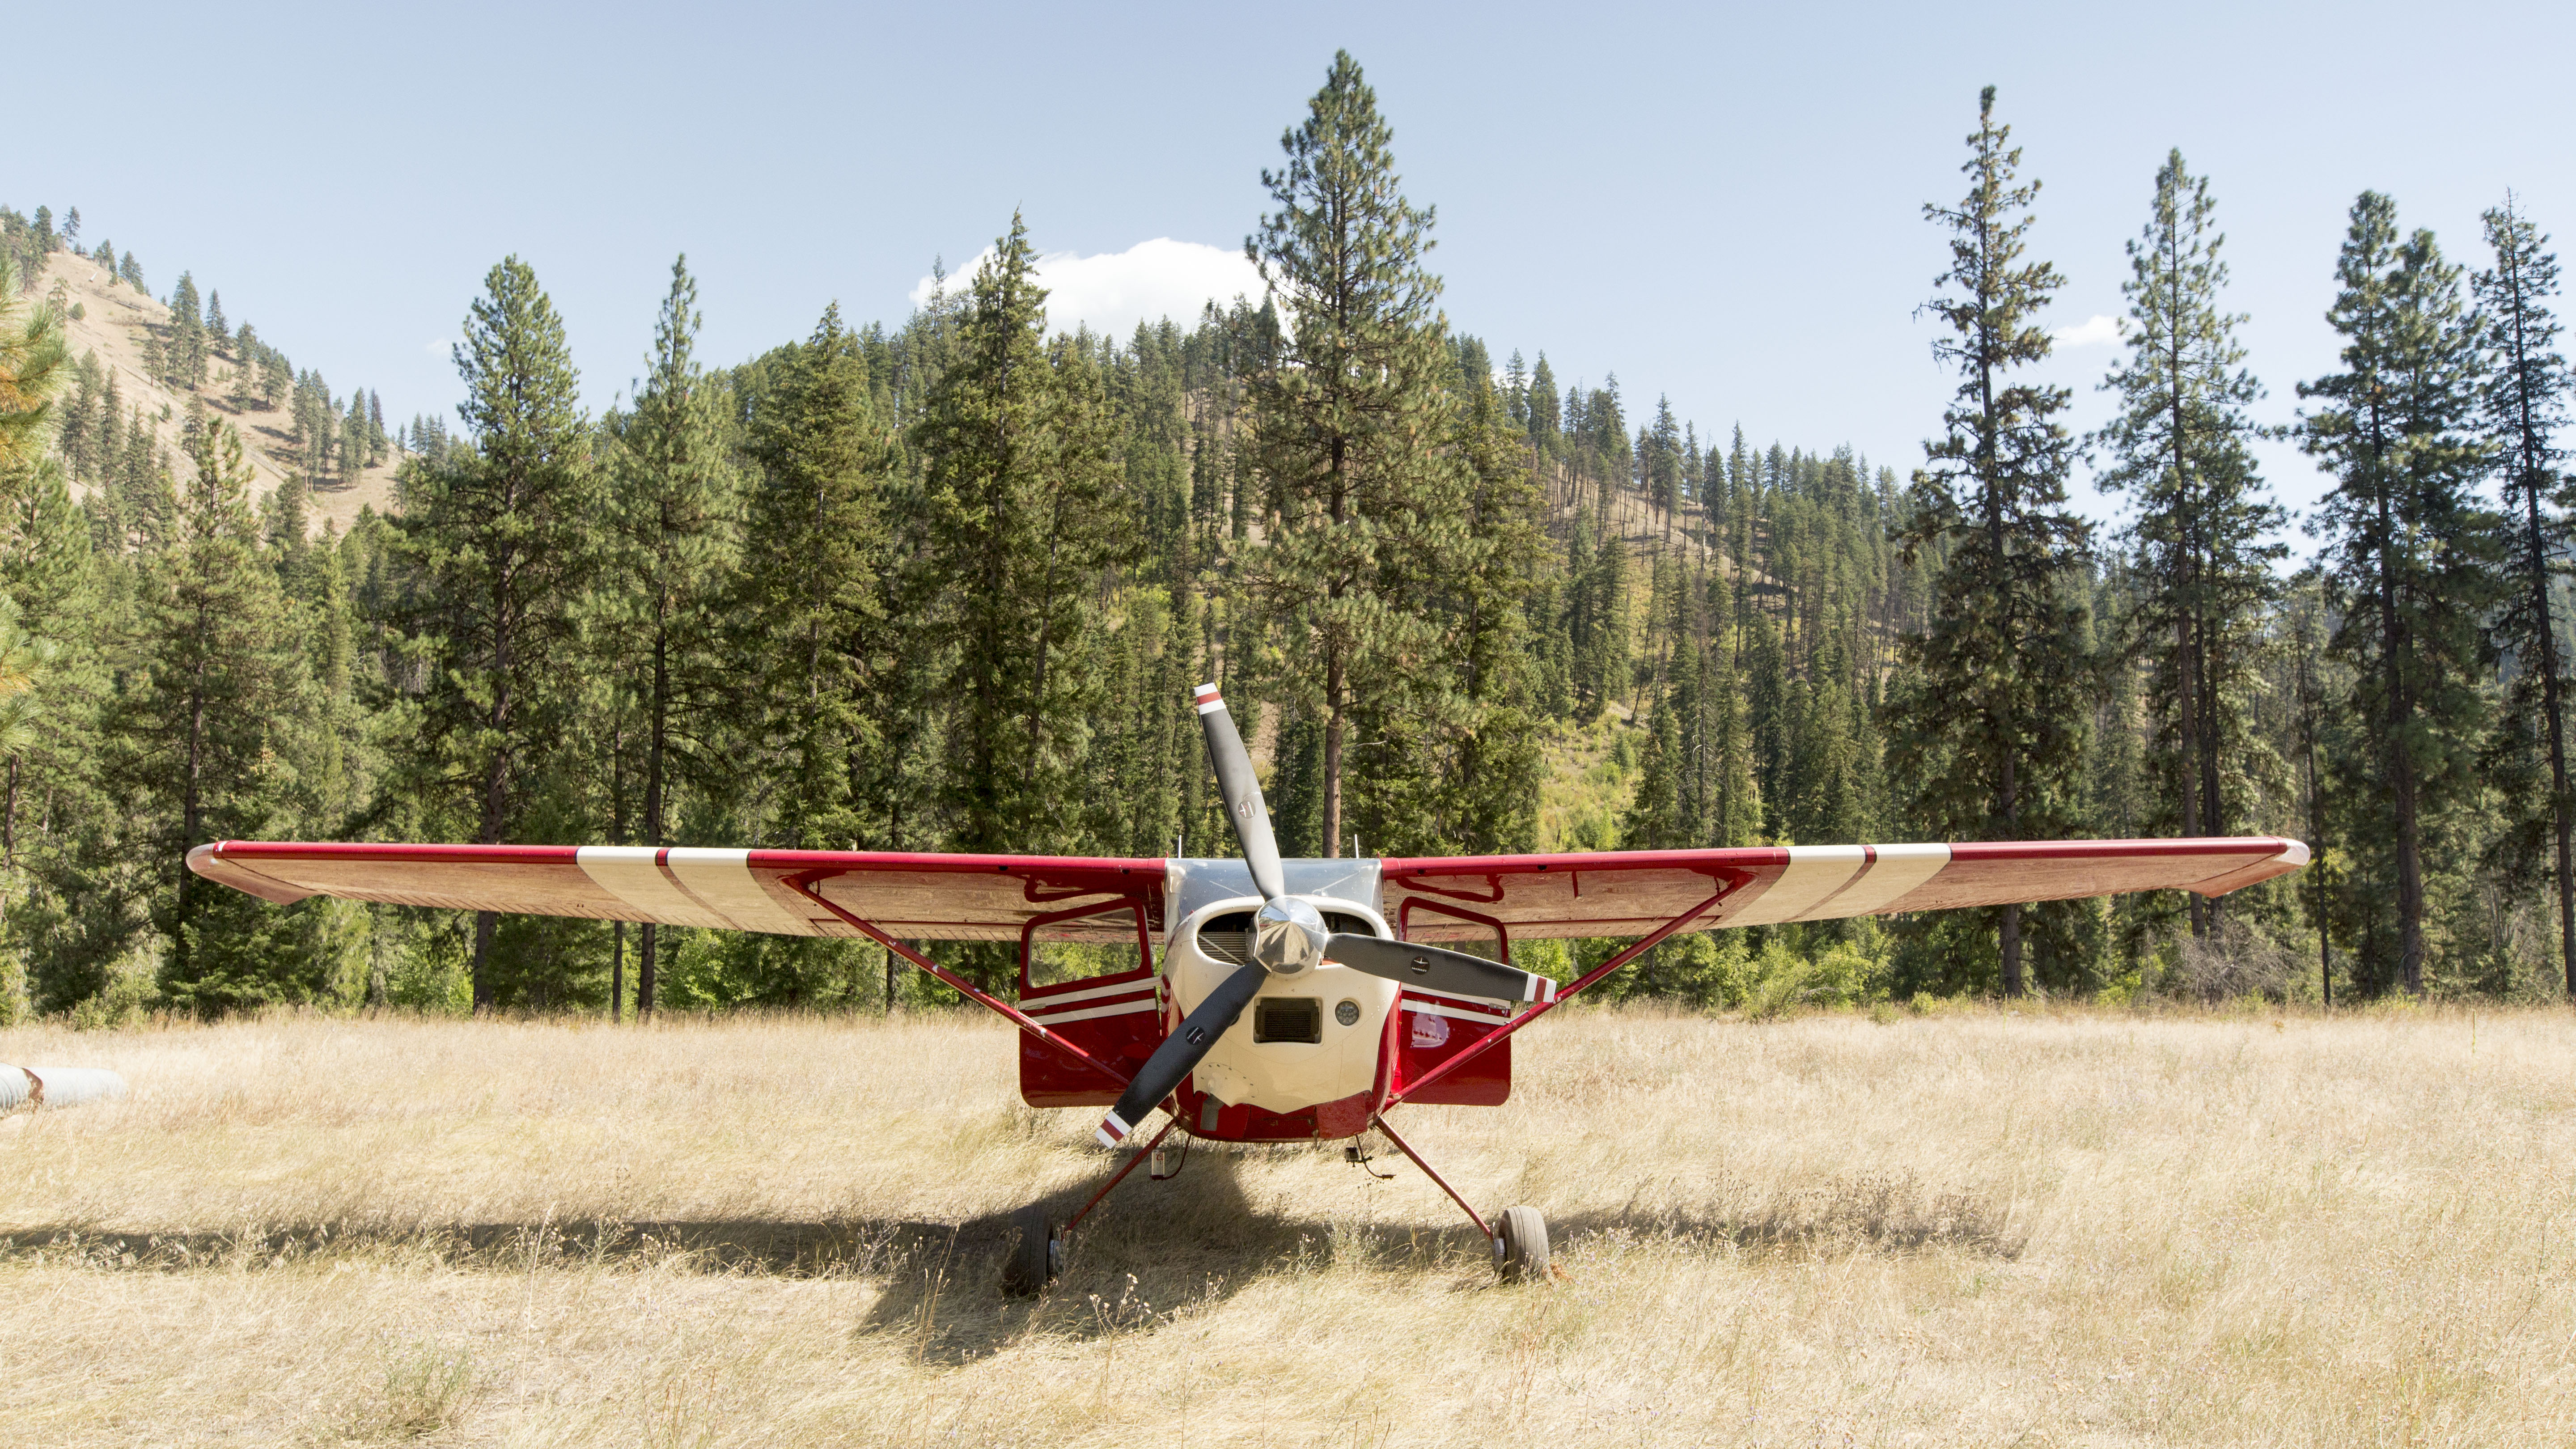 Cessna 180 Parked in the Idaho backcountry